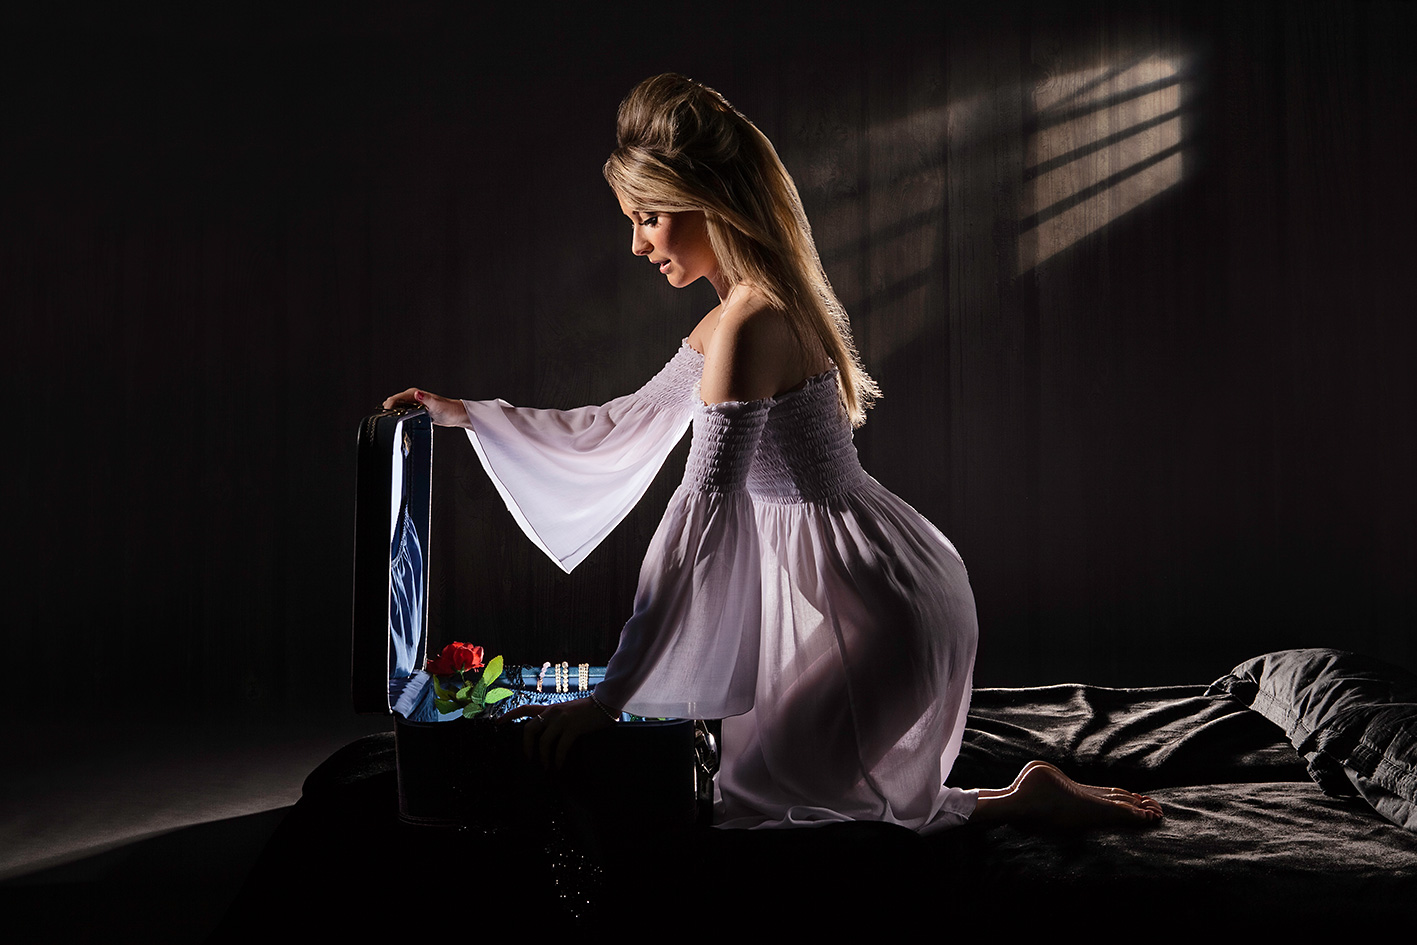 Photo of a young woman kneeling on her bed at night in a semi-transparent night gown, opening a suitcase. A shaft of light is cast across the wall behind her from a window.